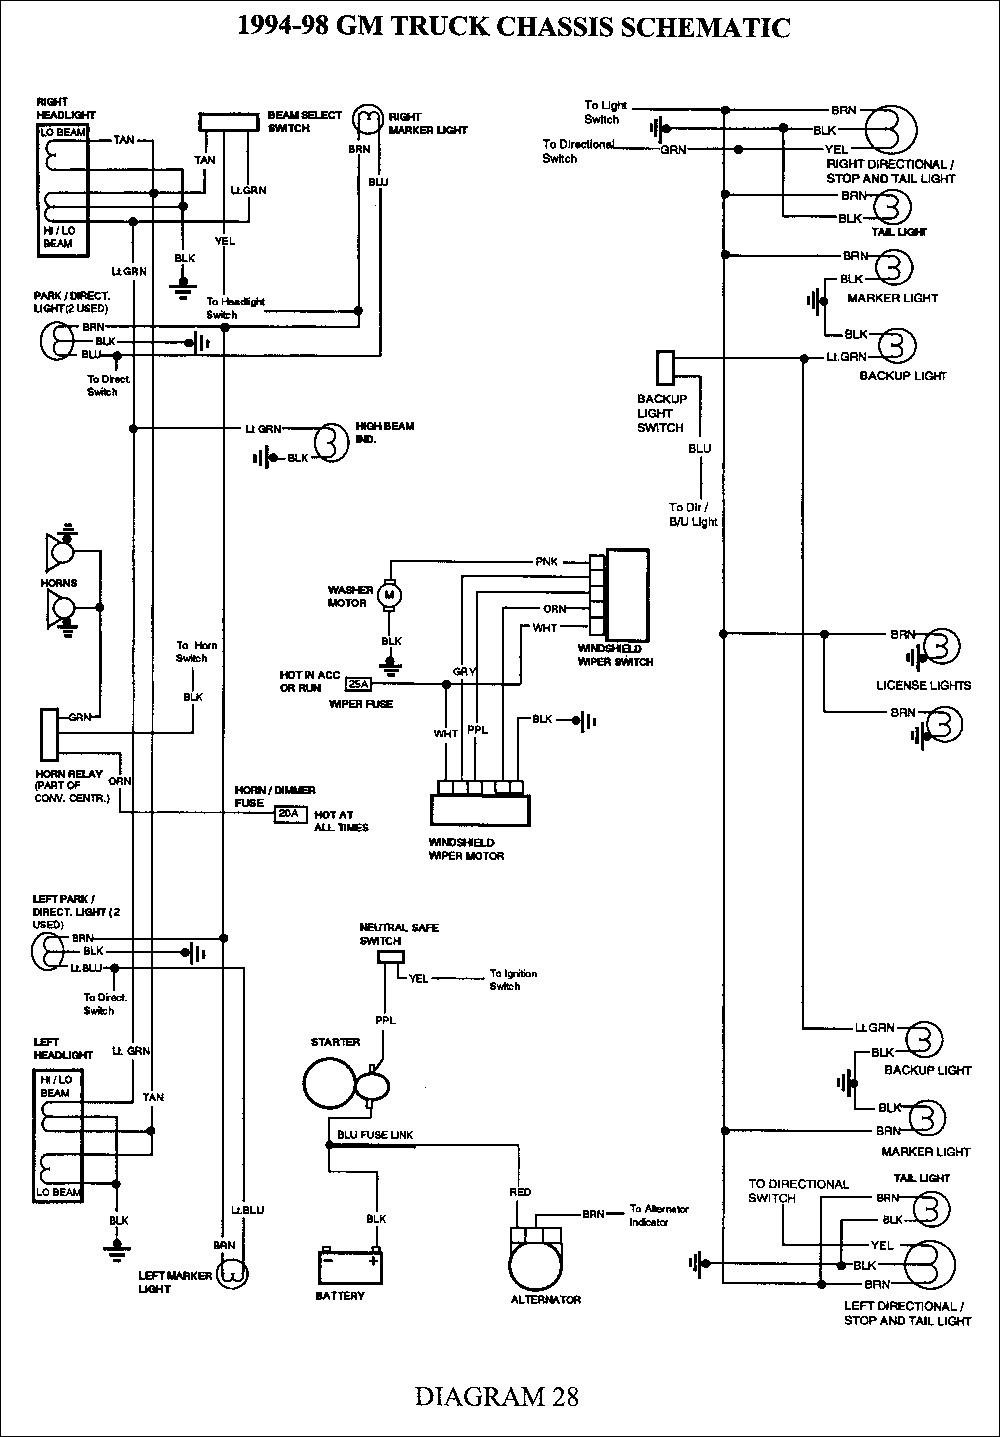 1997 Gmc Sierra Fuel Pump Wiring Diagram